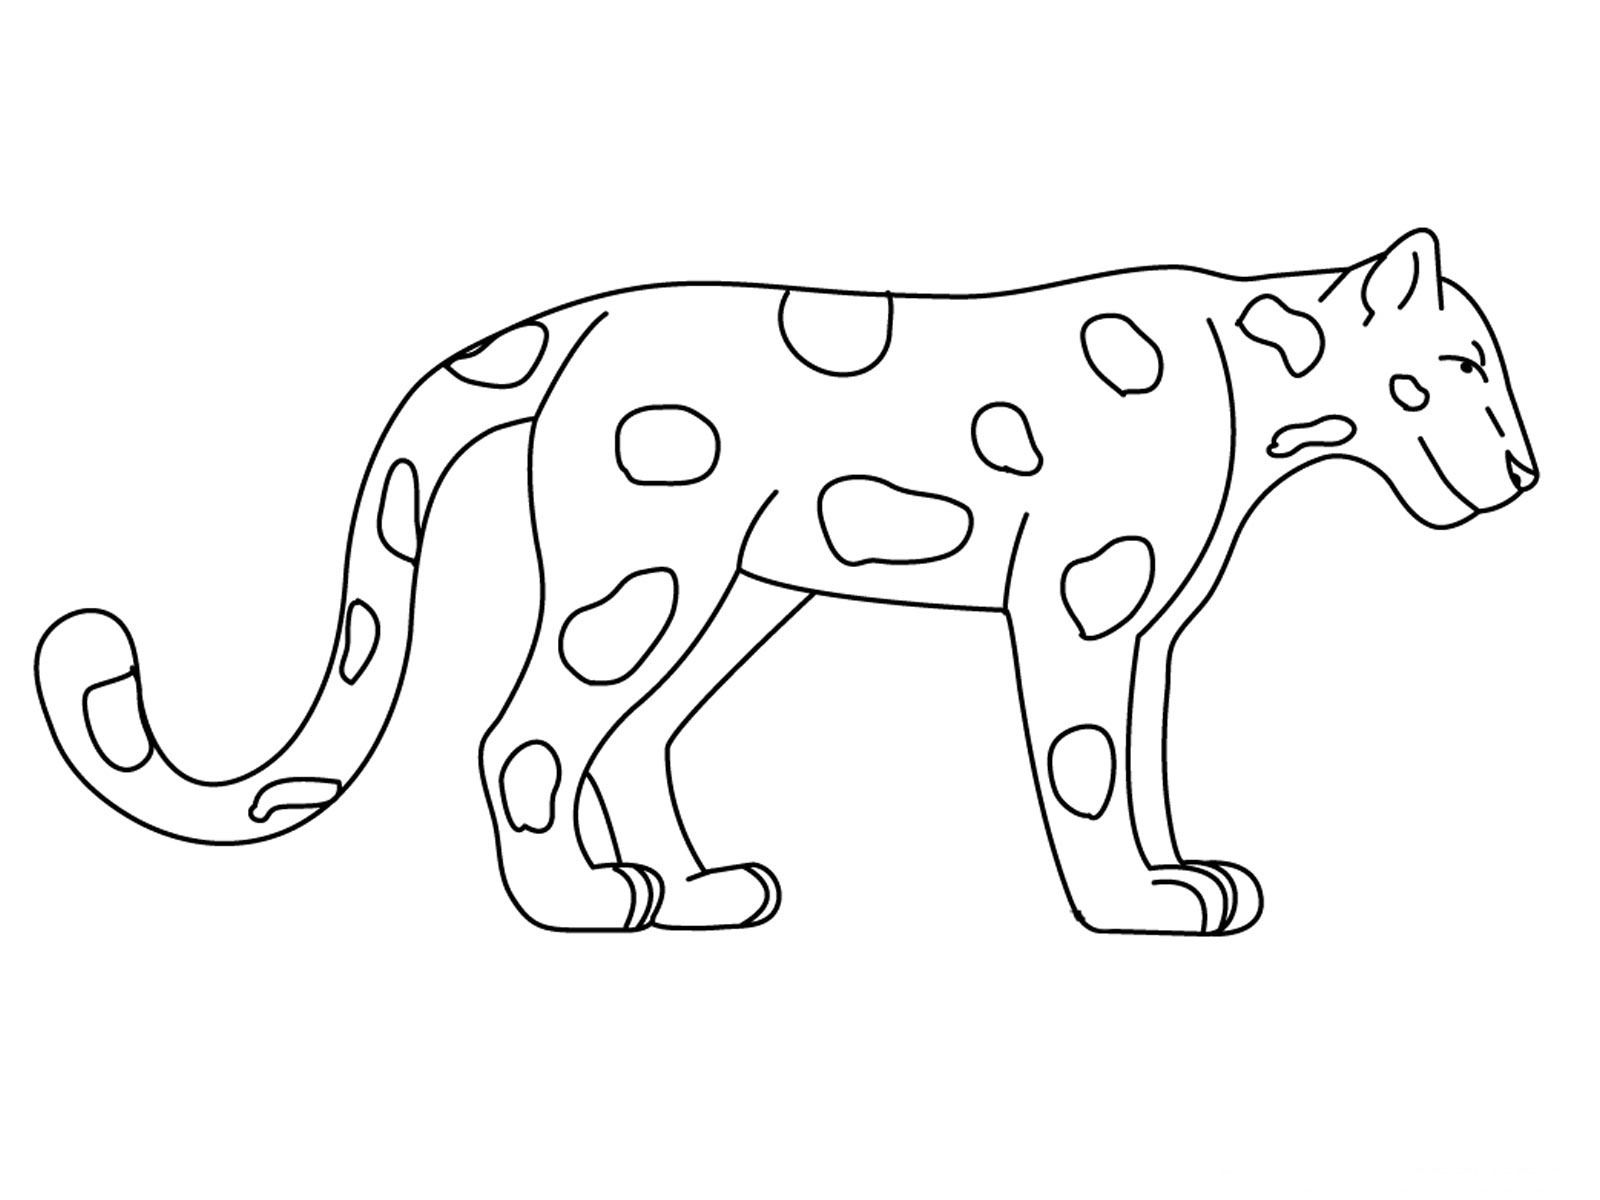 Free coloring pages realistic animals - Rainforest Animal Coloring Sheets Jaguar Animal Coloring Pages Realistic Coloring Pages